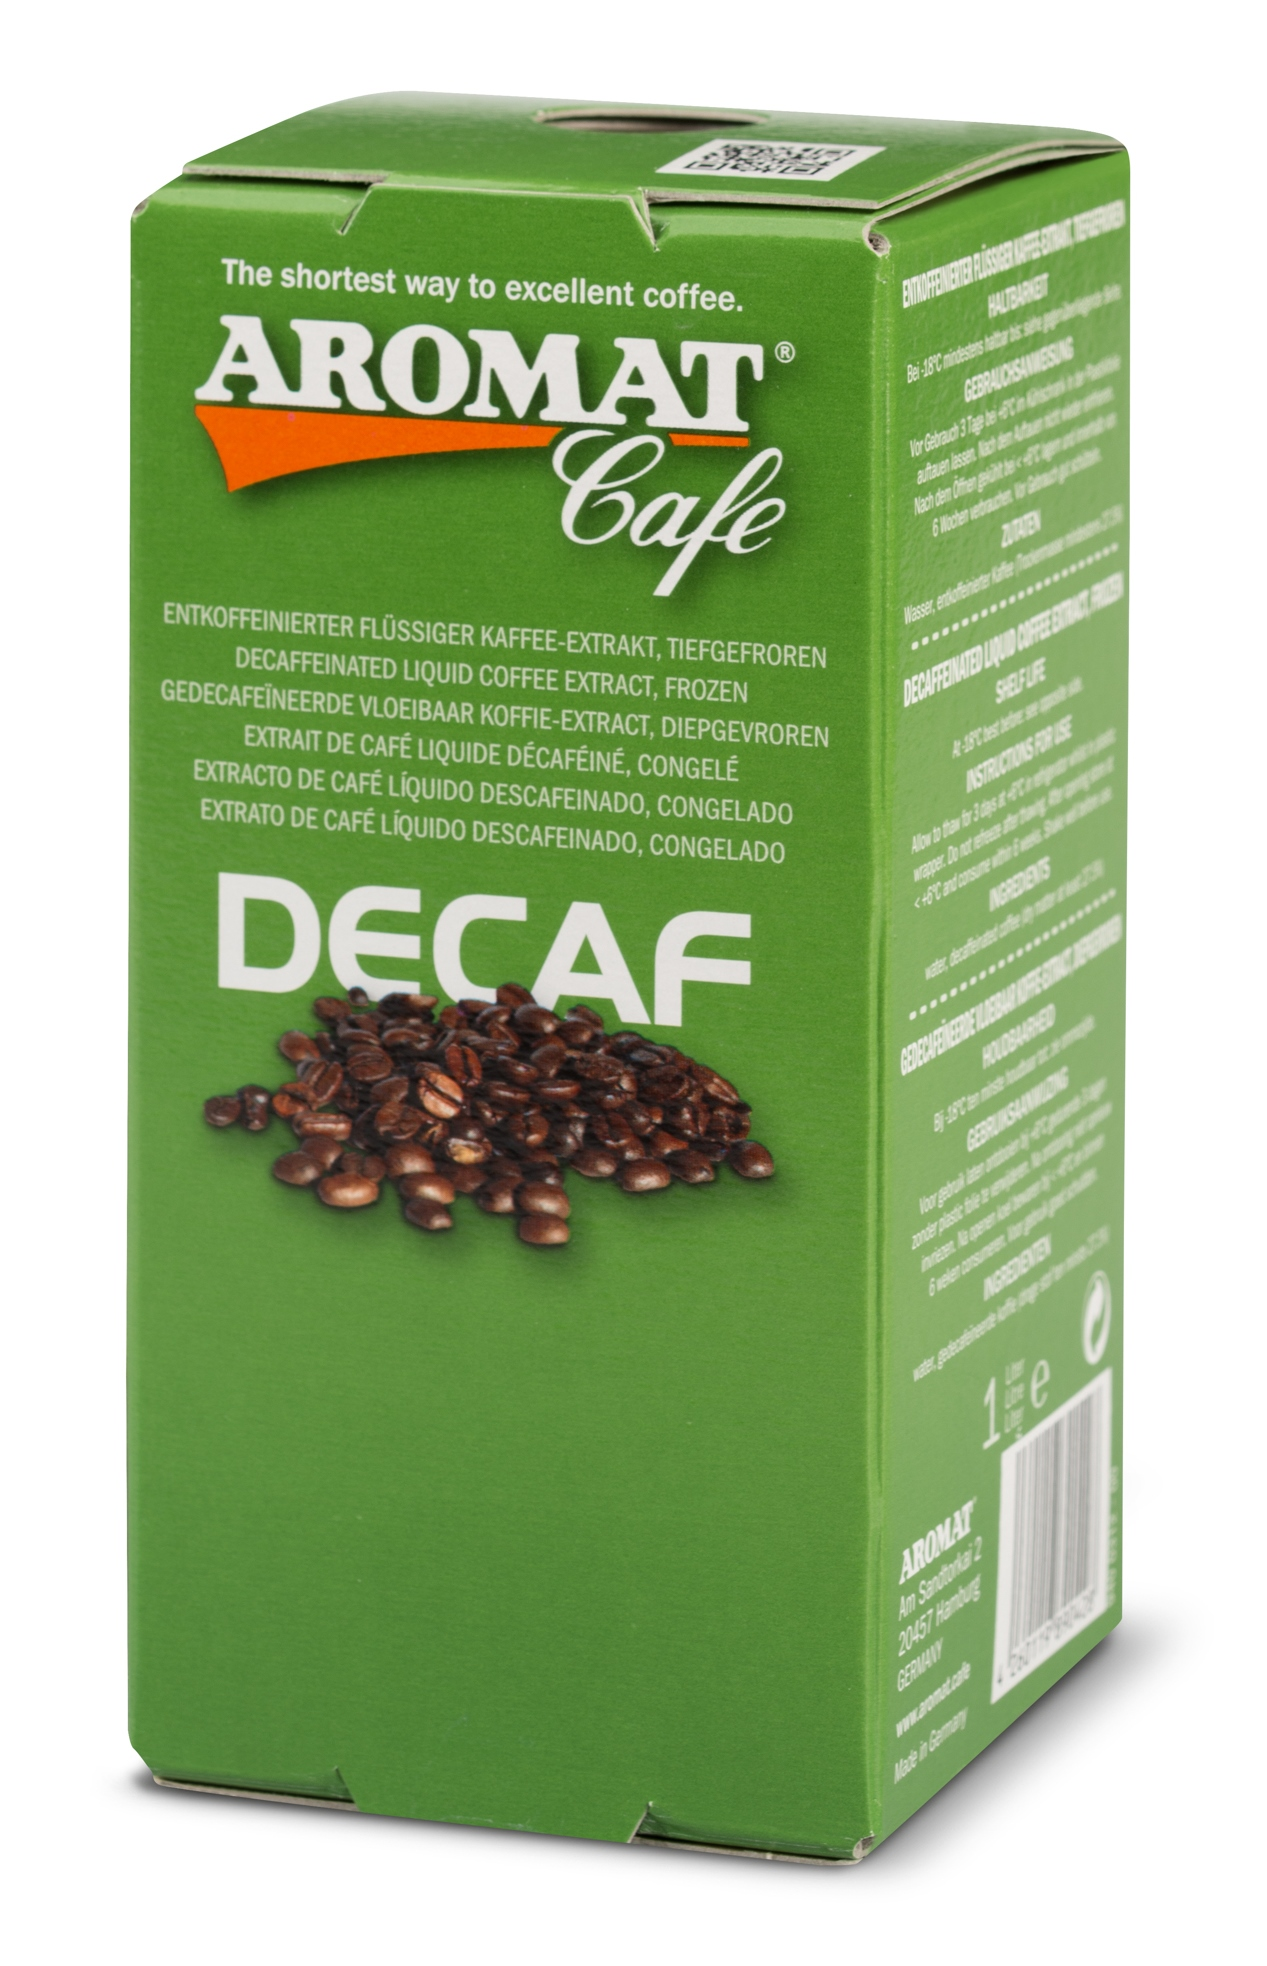 AROMAT Cafe DECAF